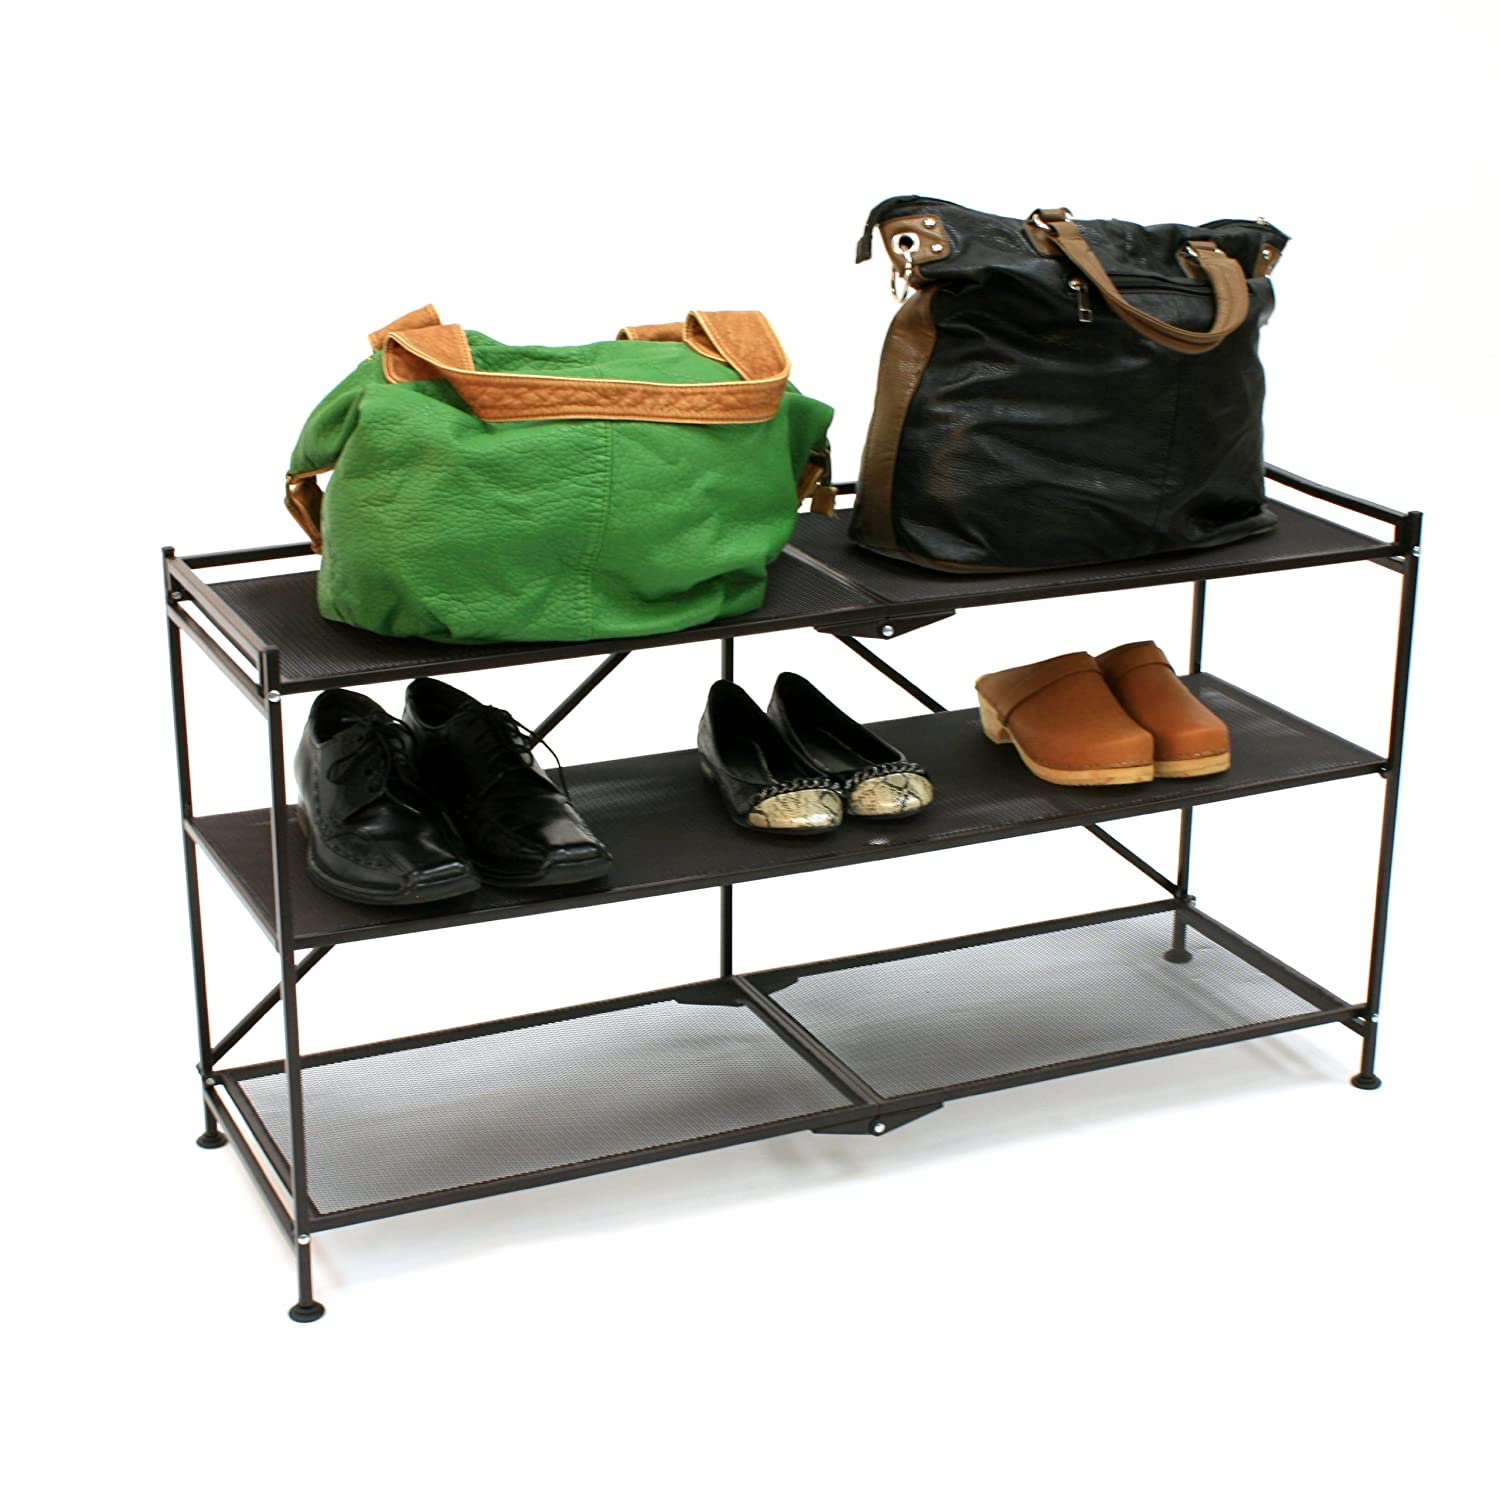 Origami RSS-02 Shoe Rack, Large Origami shoe rack